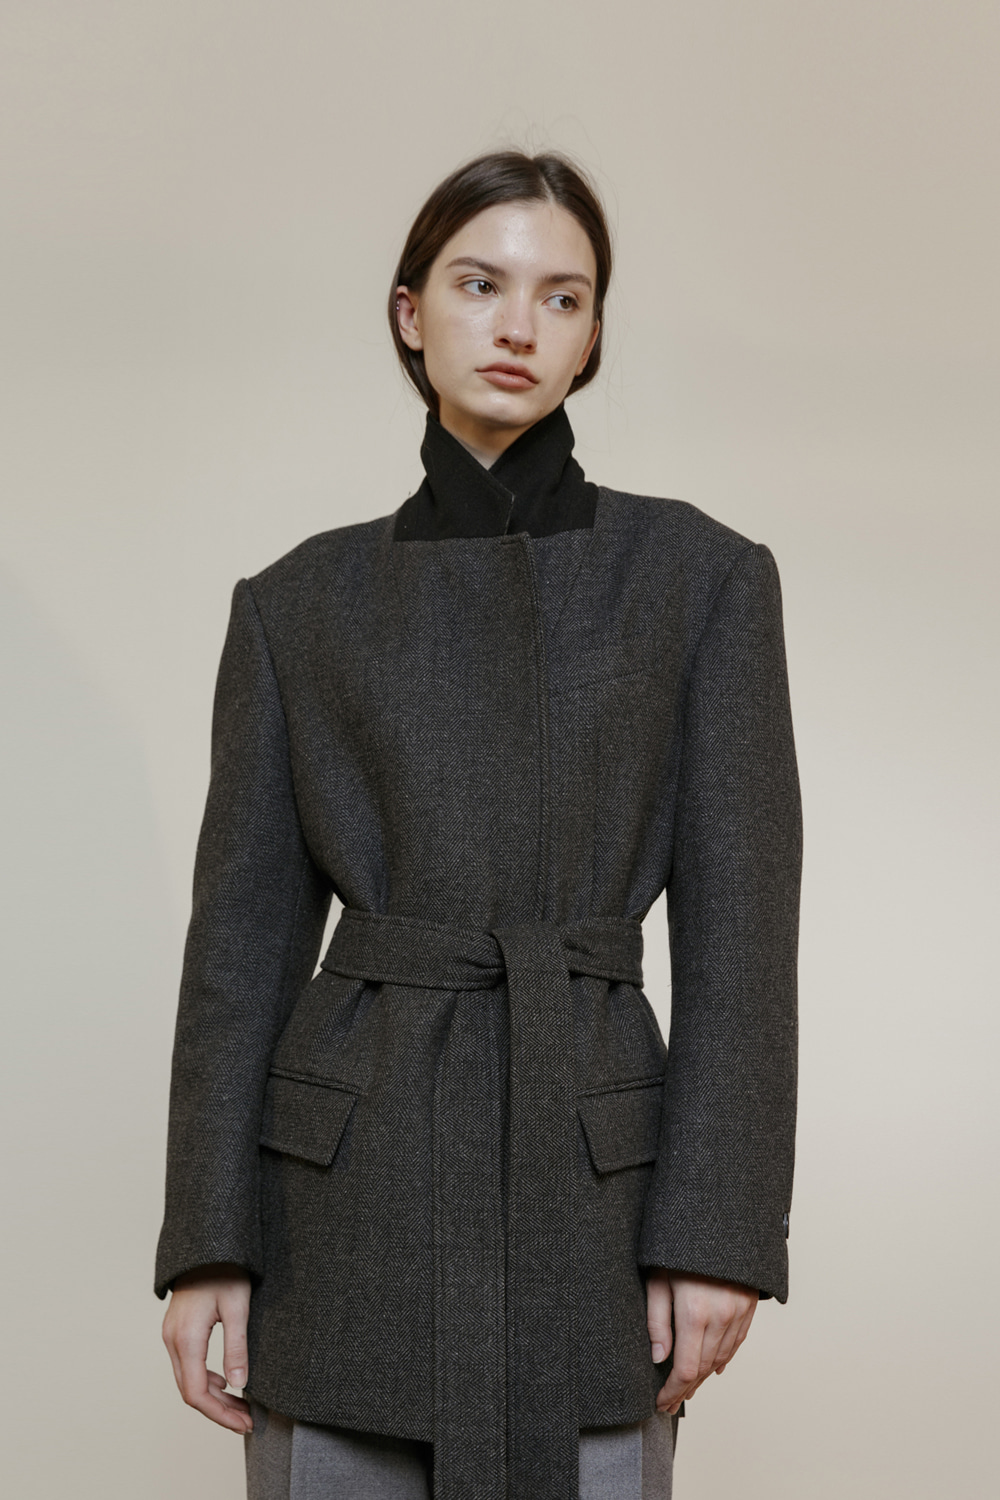 unit | Jacket Harringbone Belted Charcoal Gray